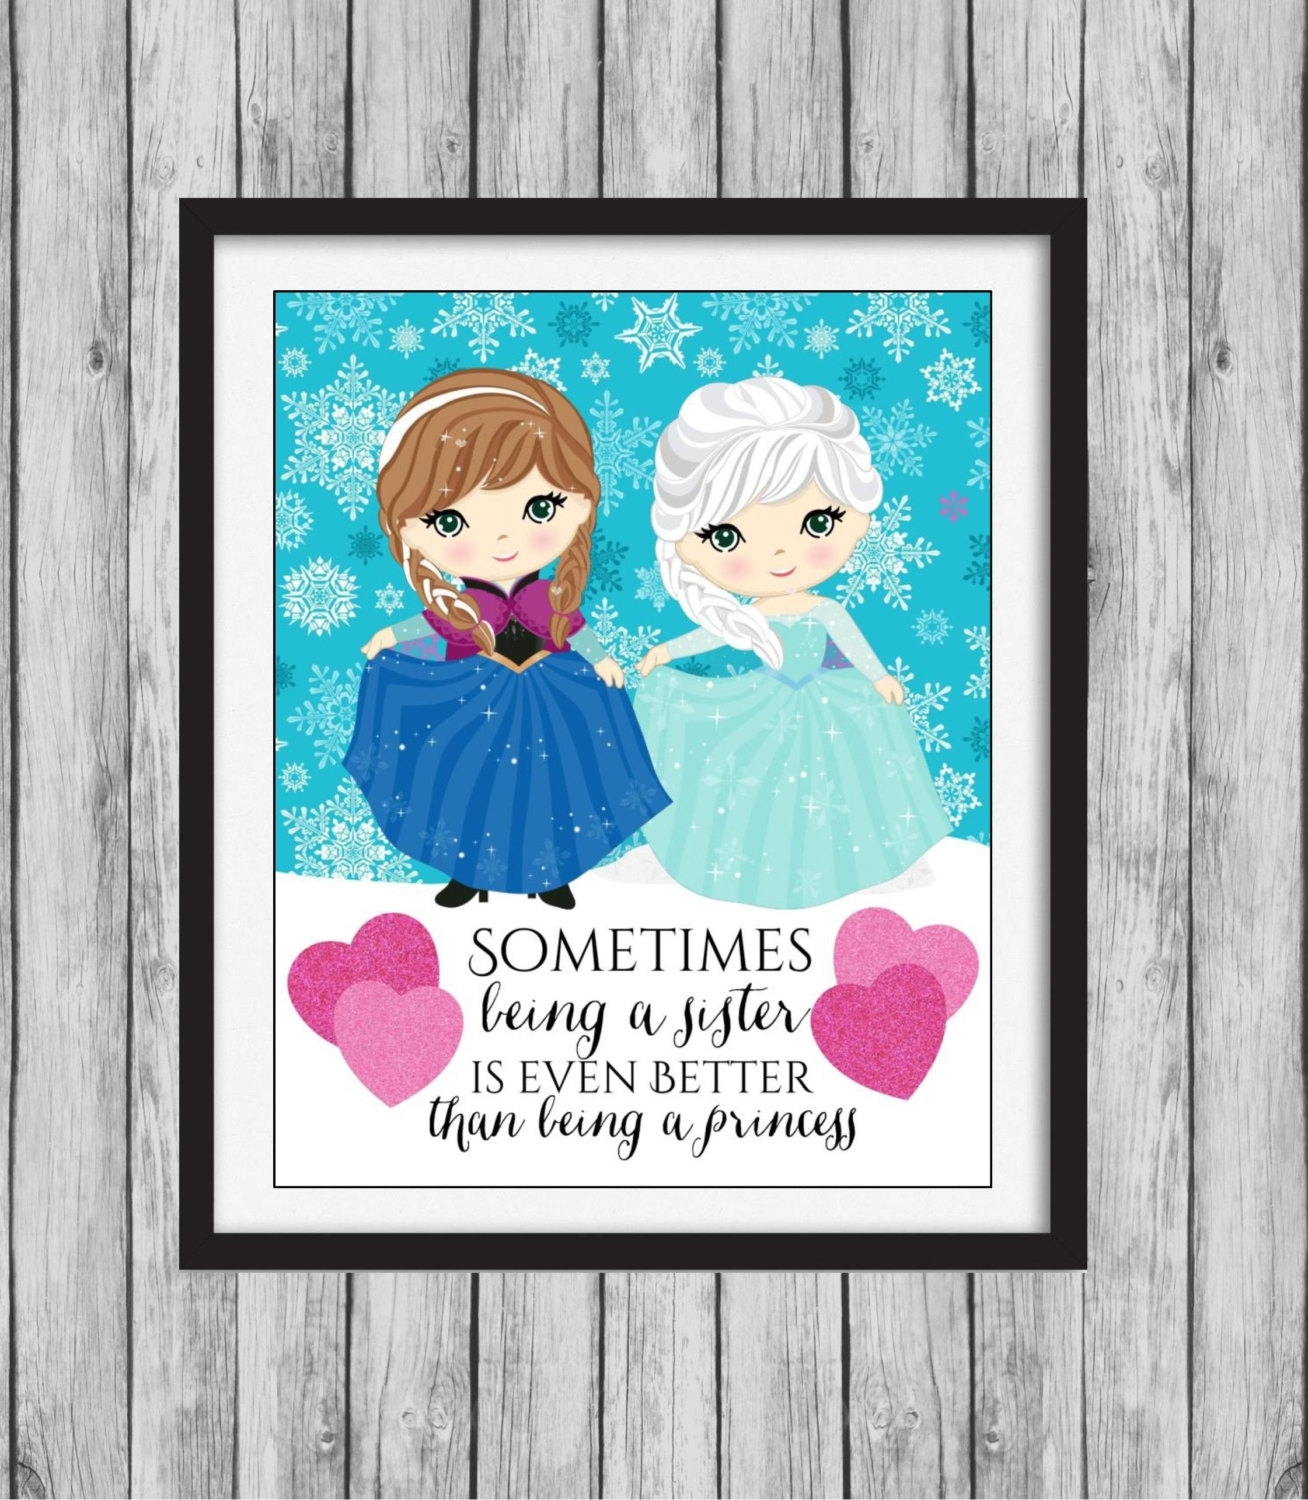 Frozen Wall Art | Himalayantrexplorers In Best And Newest Elsa Canvas Wall Art (View 5 of 15)